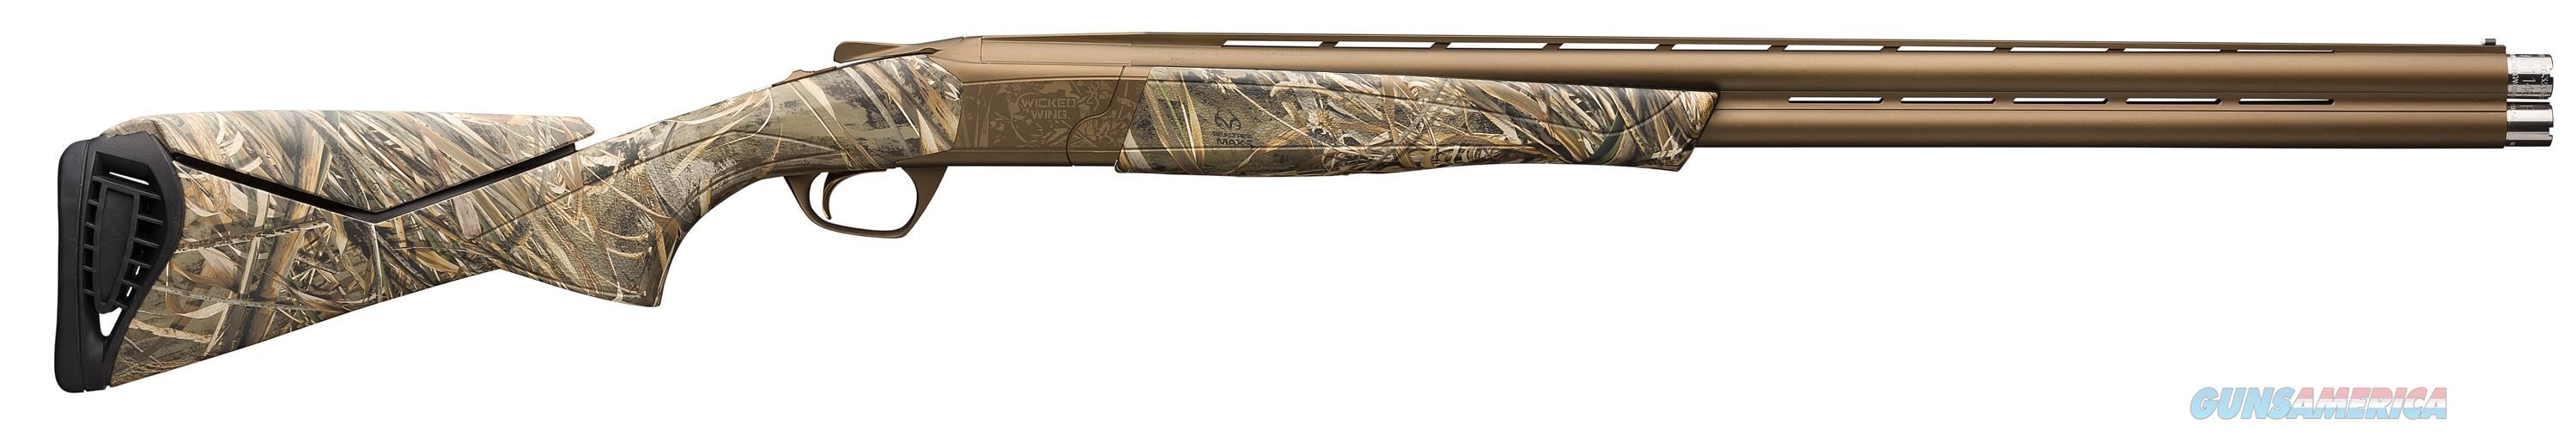 Cynergy Wicked Wing Max5 12Ga 30-3.5In 018717203  Guns > Shotguns > Browning Shotguns > Over Unders > Cynergy > Hunting